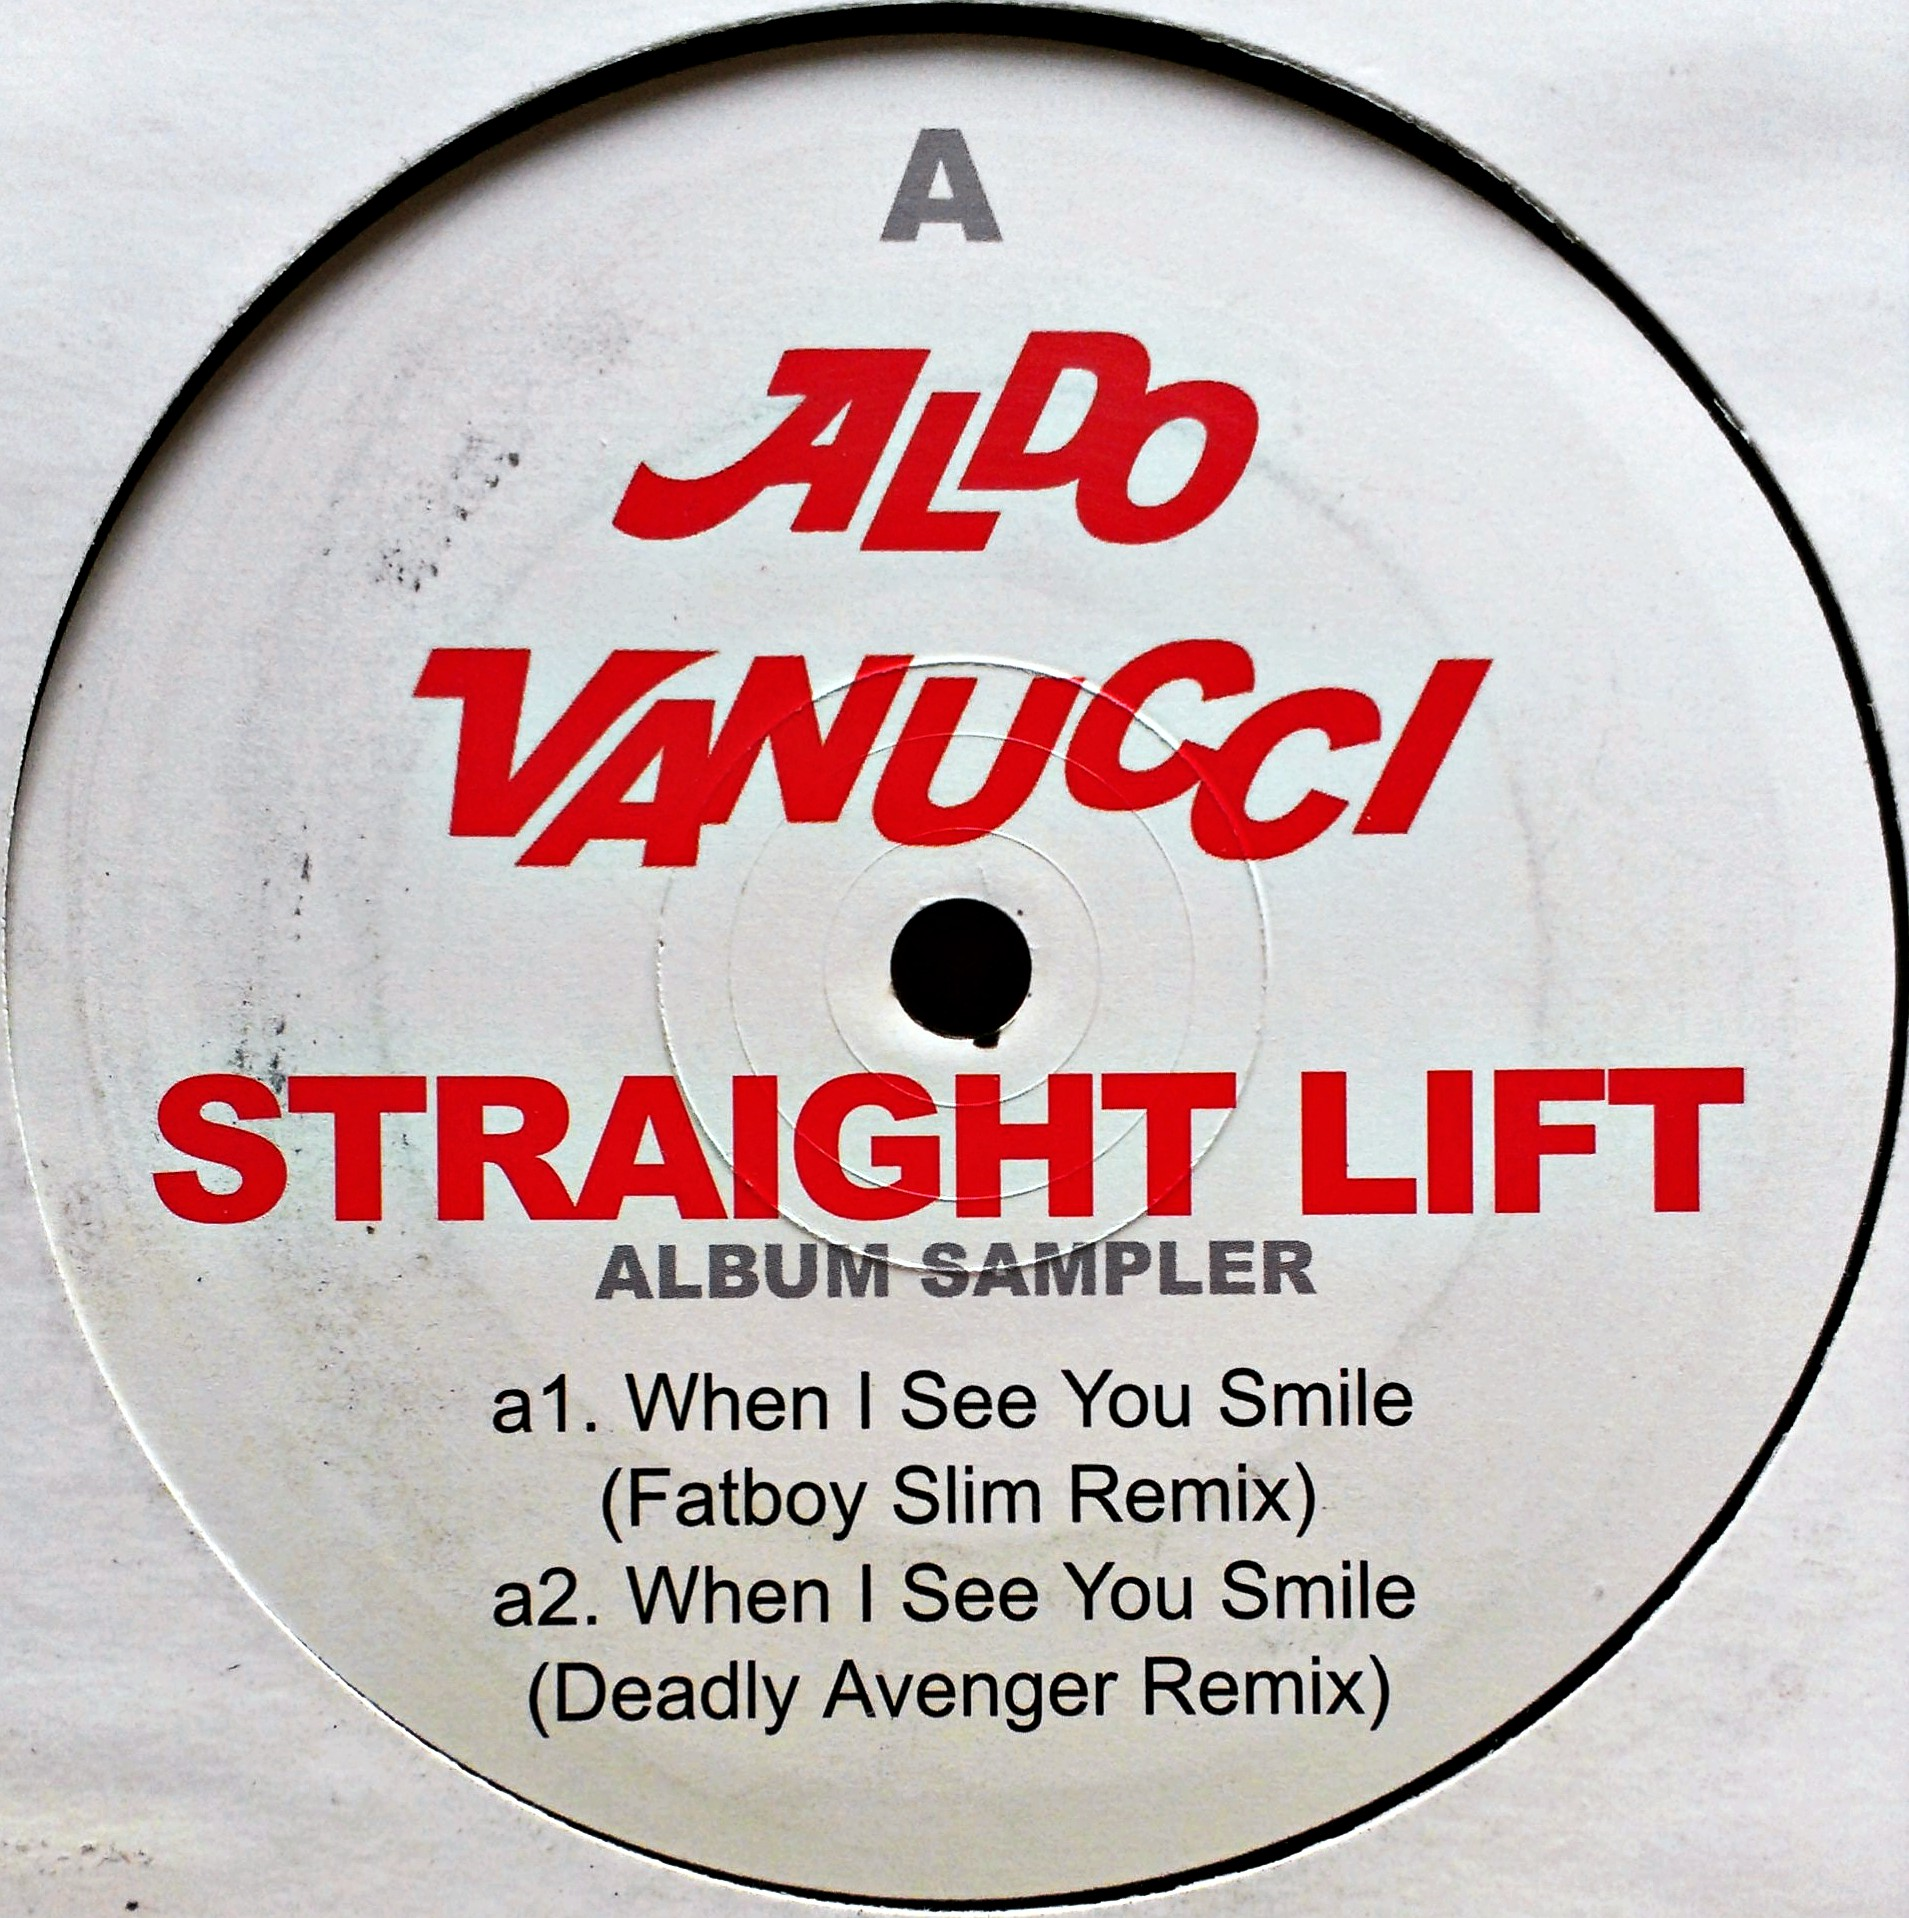 "12"" Aldo Vanucci - Straight Lift Album Sampler"